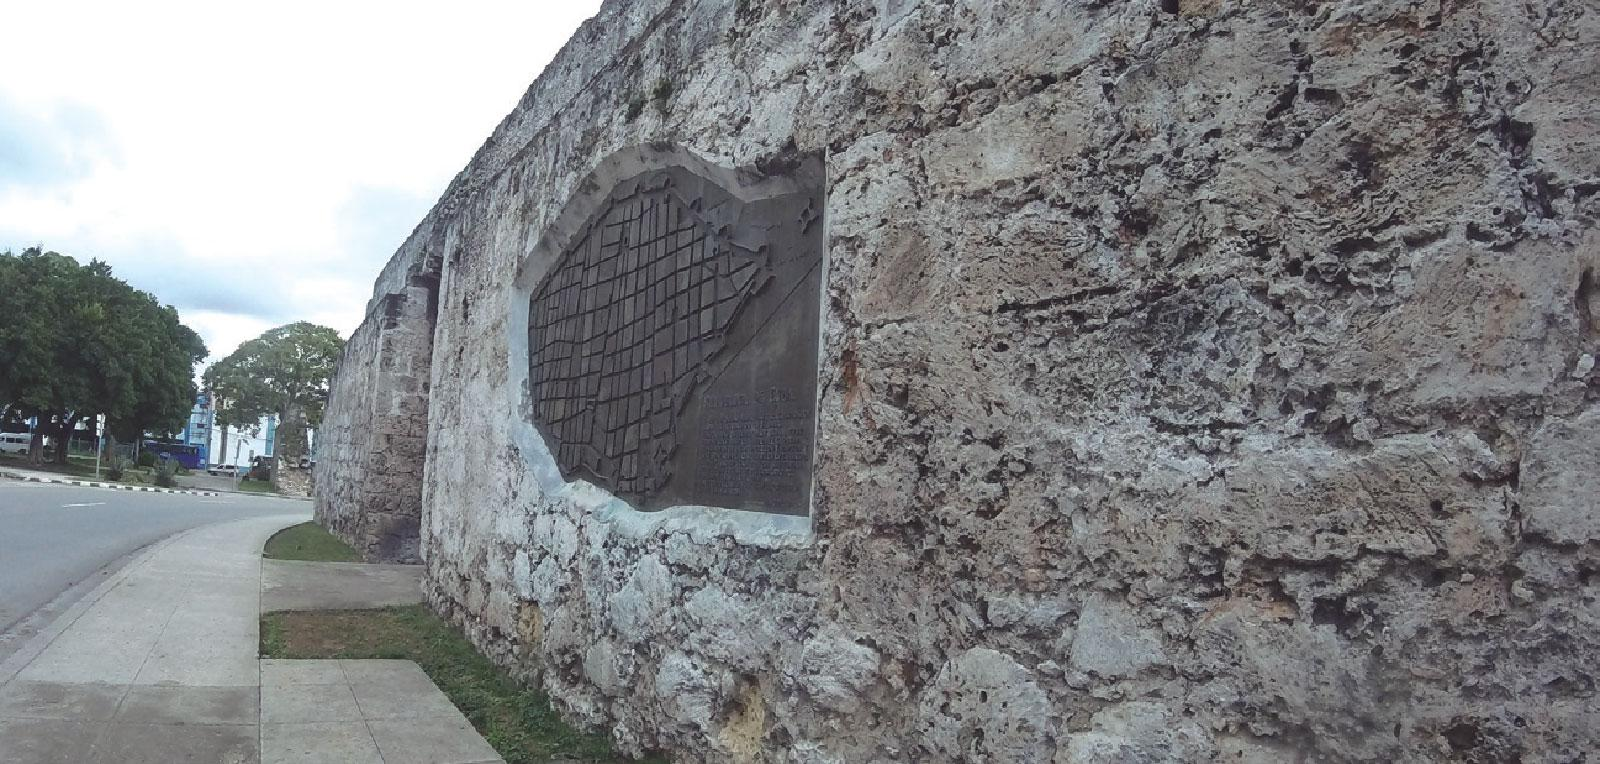 THE WALLS OF HAVANA, witnesses to history